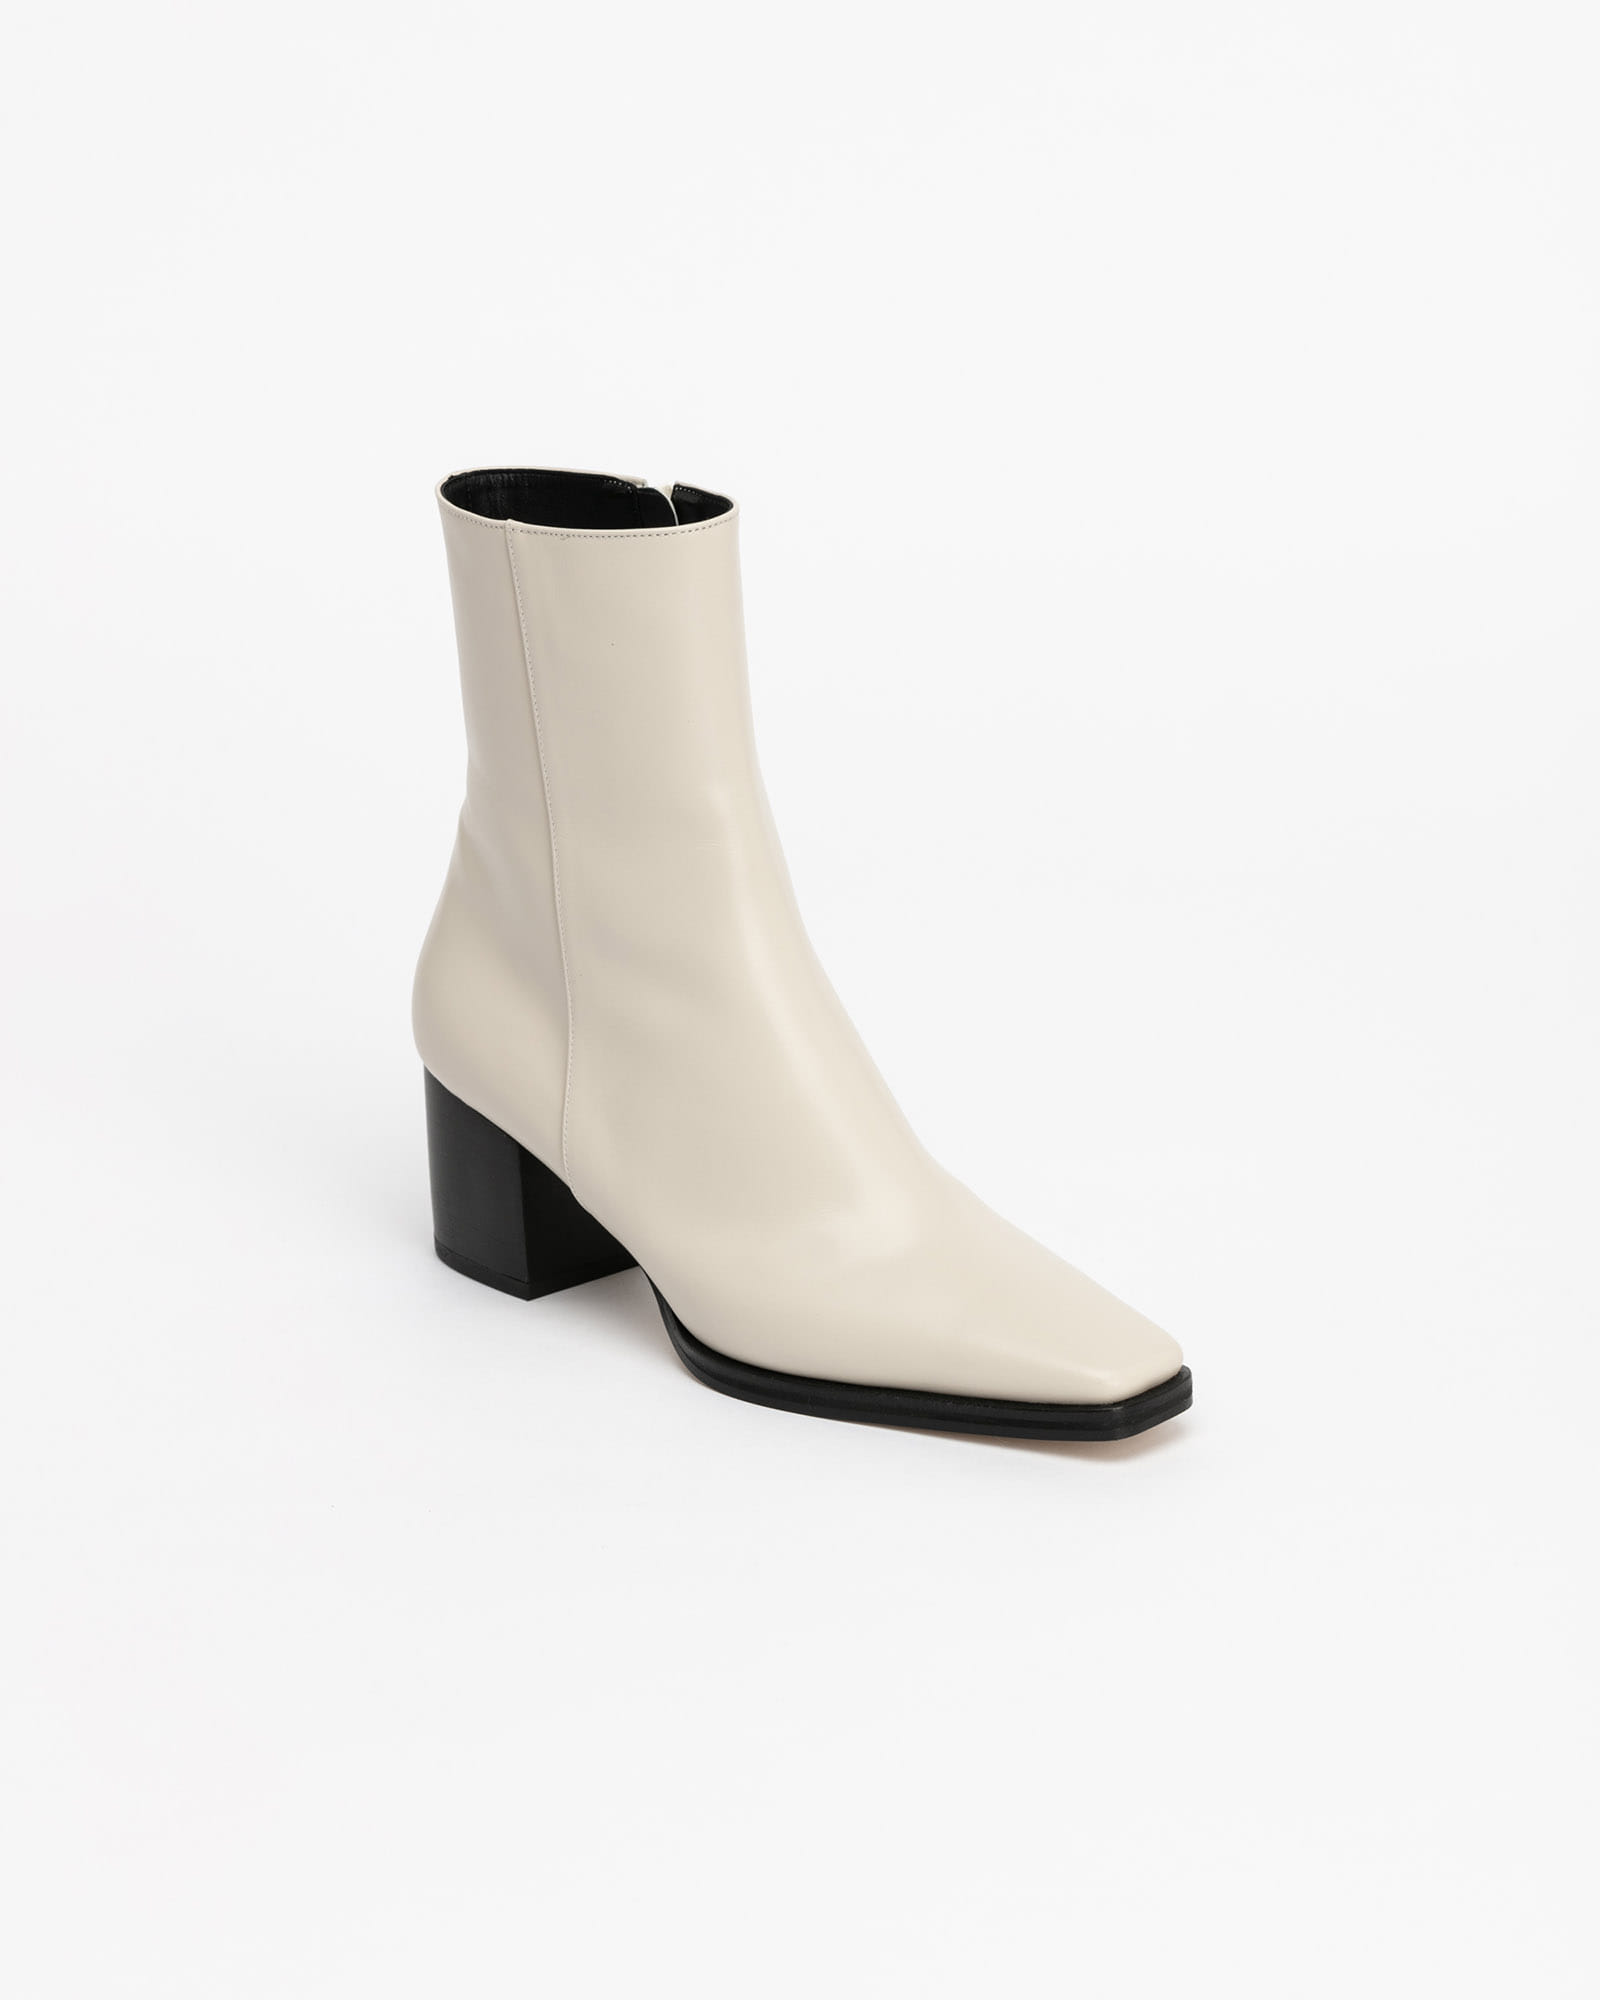 Mariana Boots in Ivory